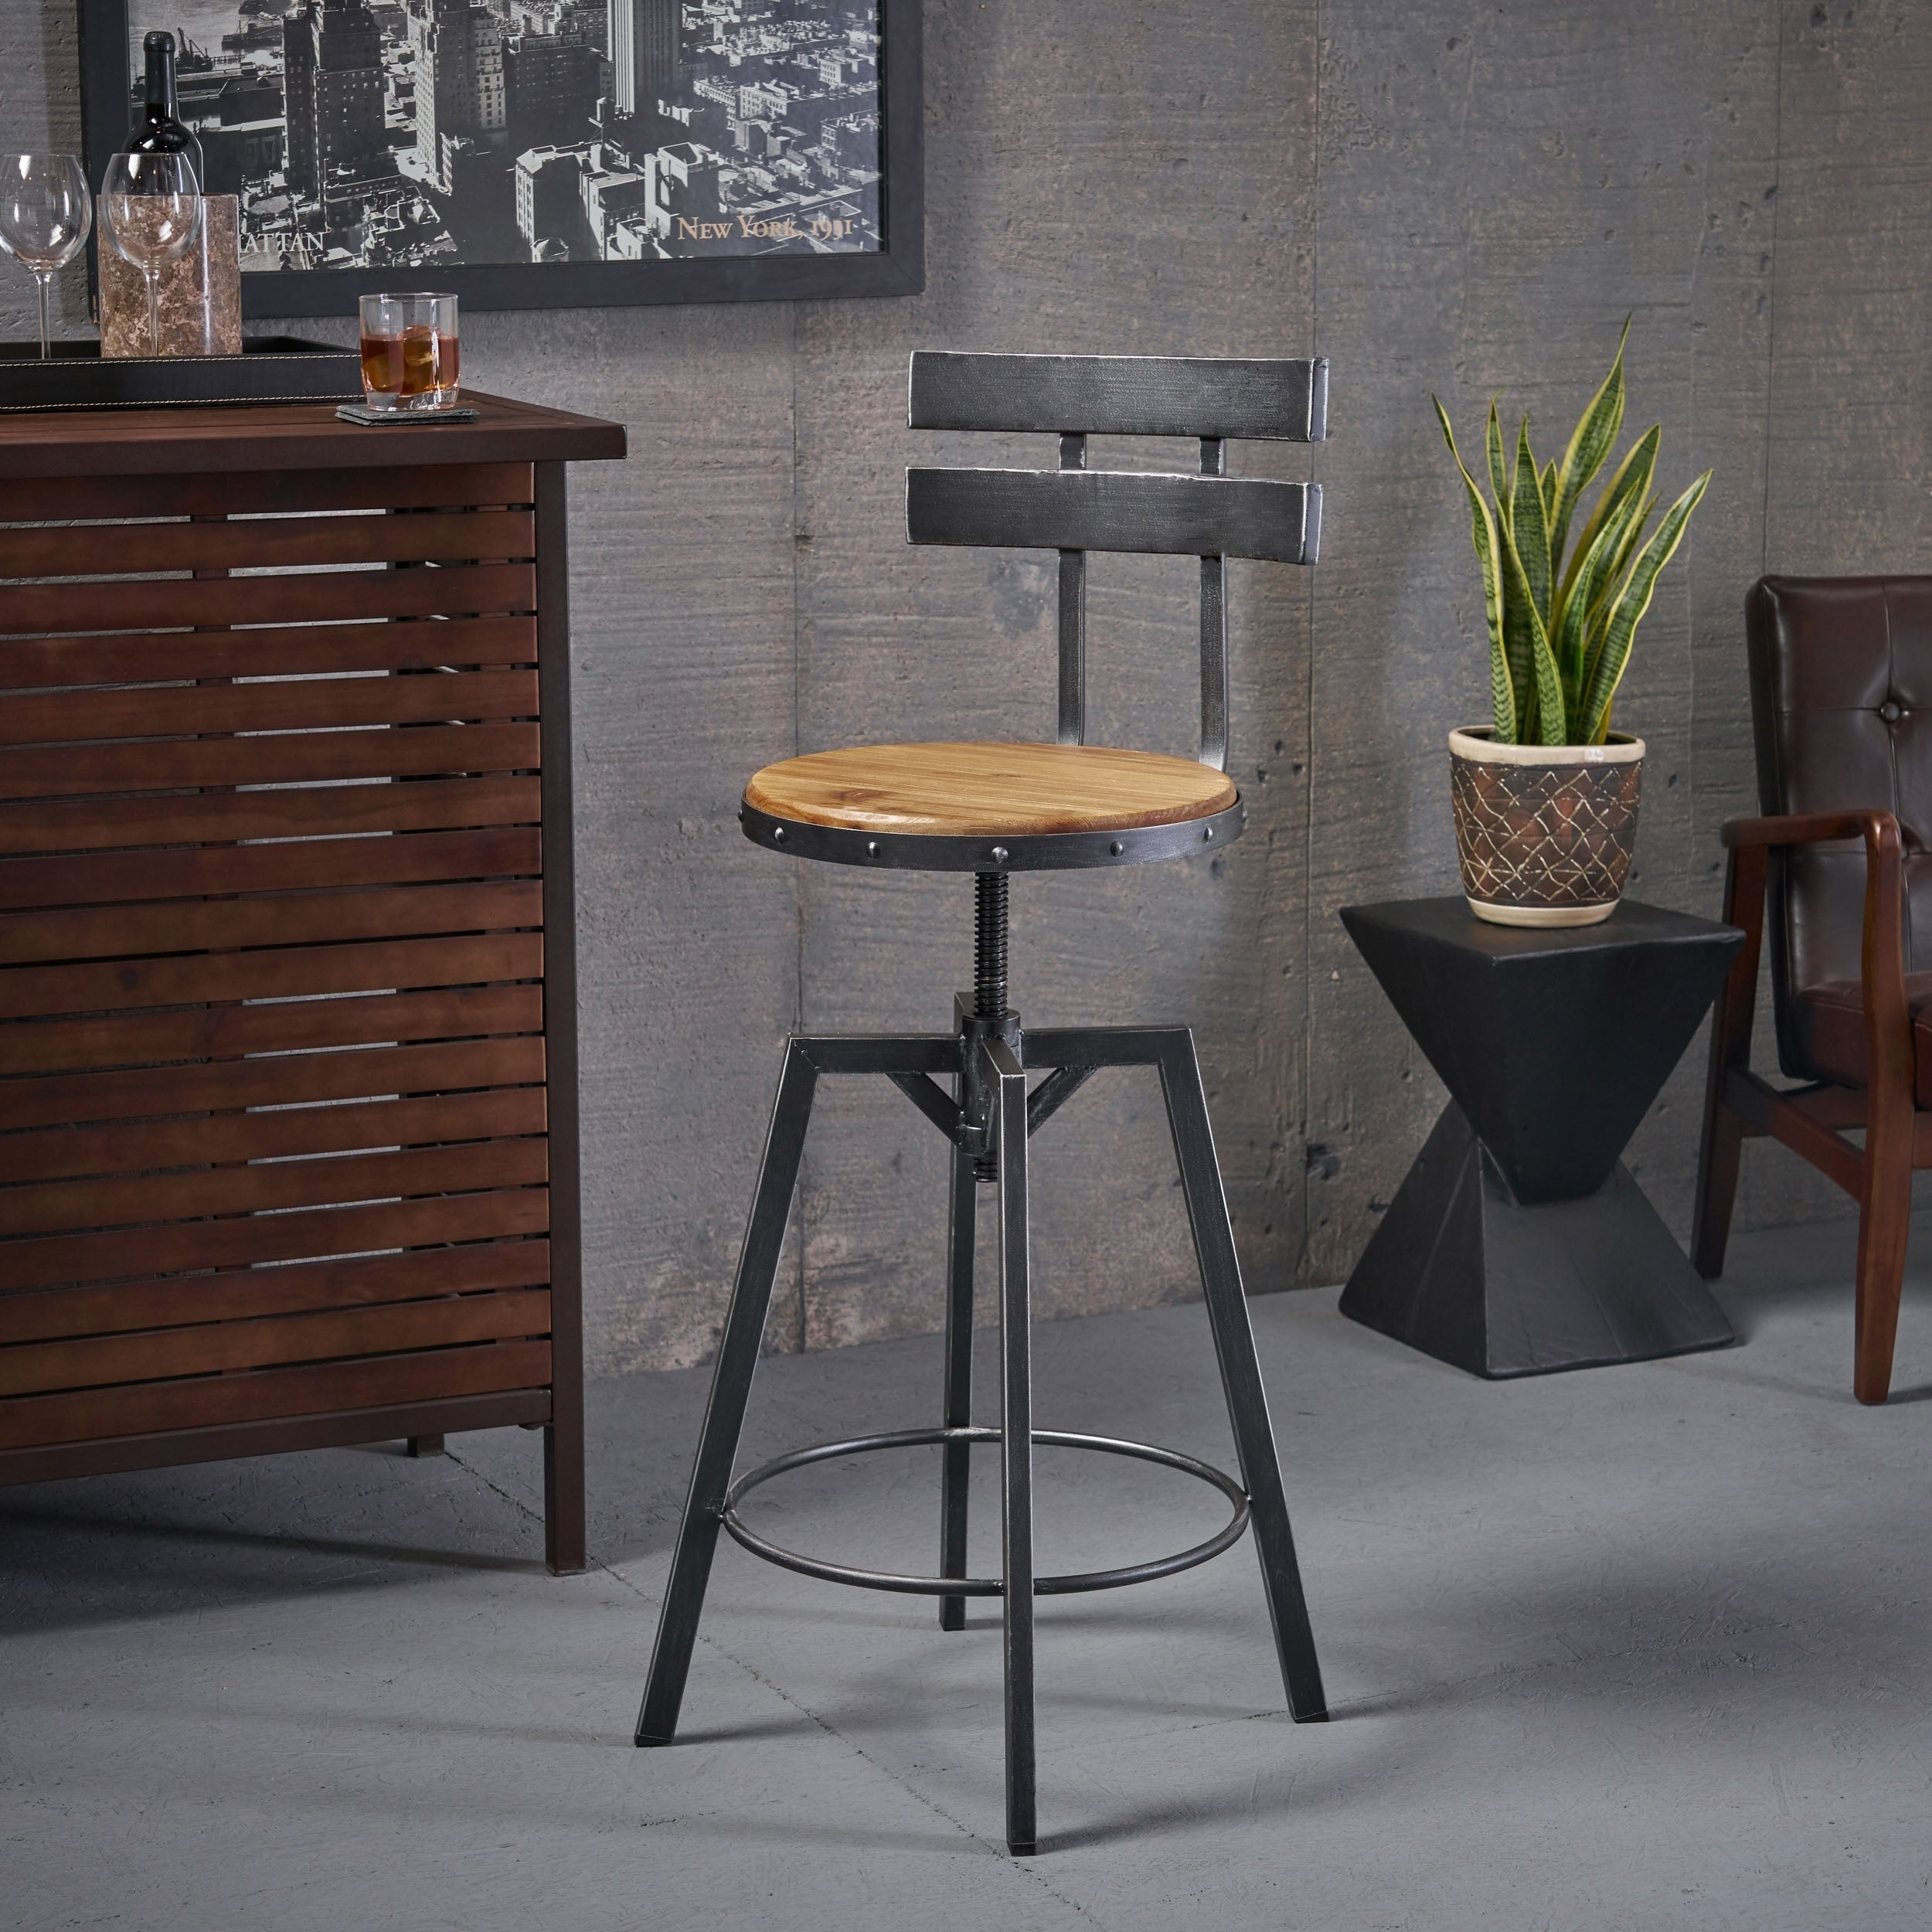 Fabulous Buy Rustic Counter Bar Stools Online At Overstock Our Gamerscity Chair Design For Home Gamerscityorg